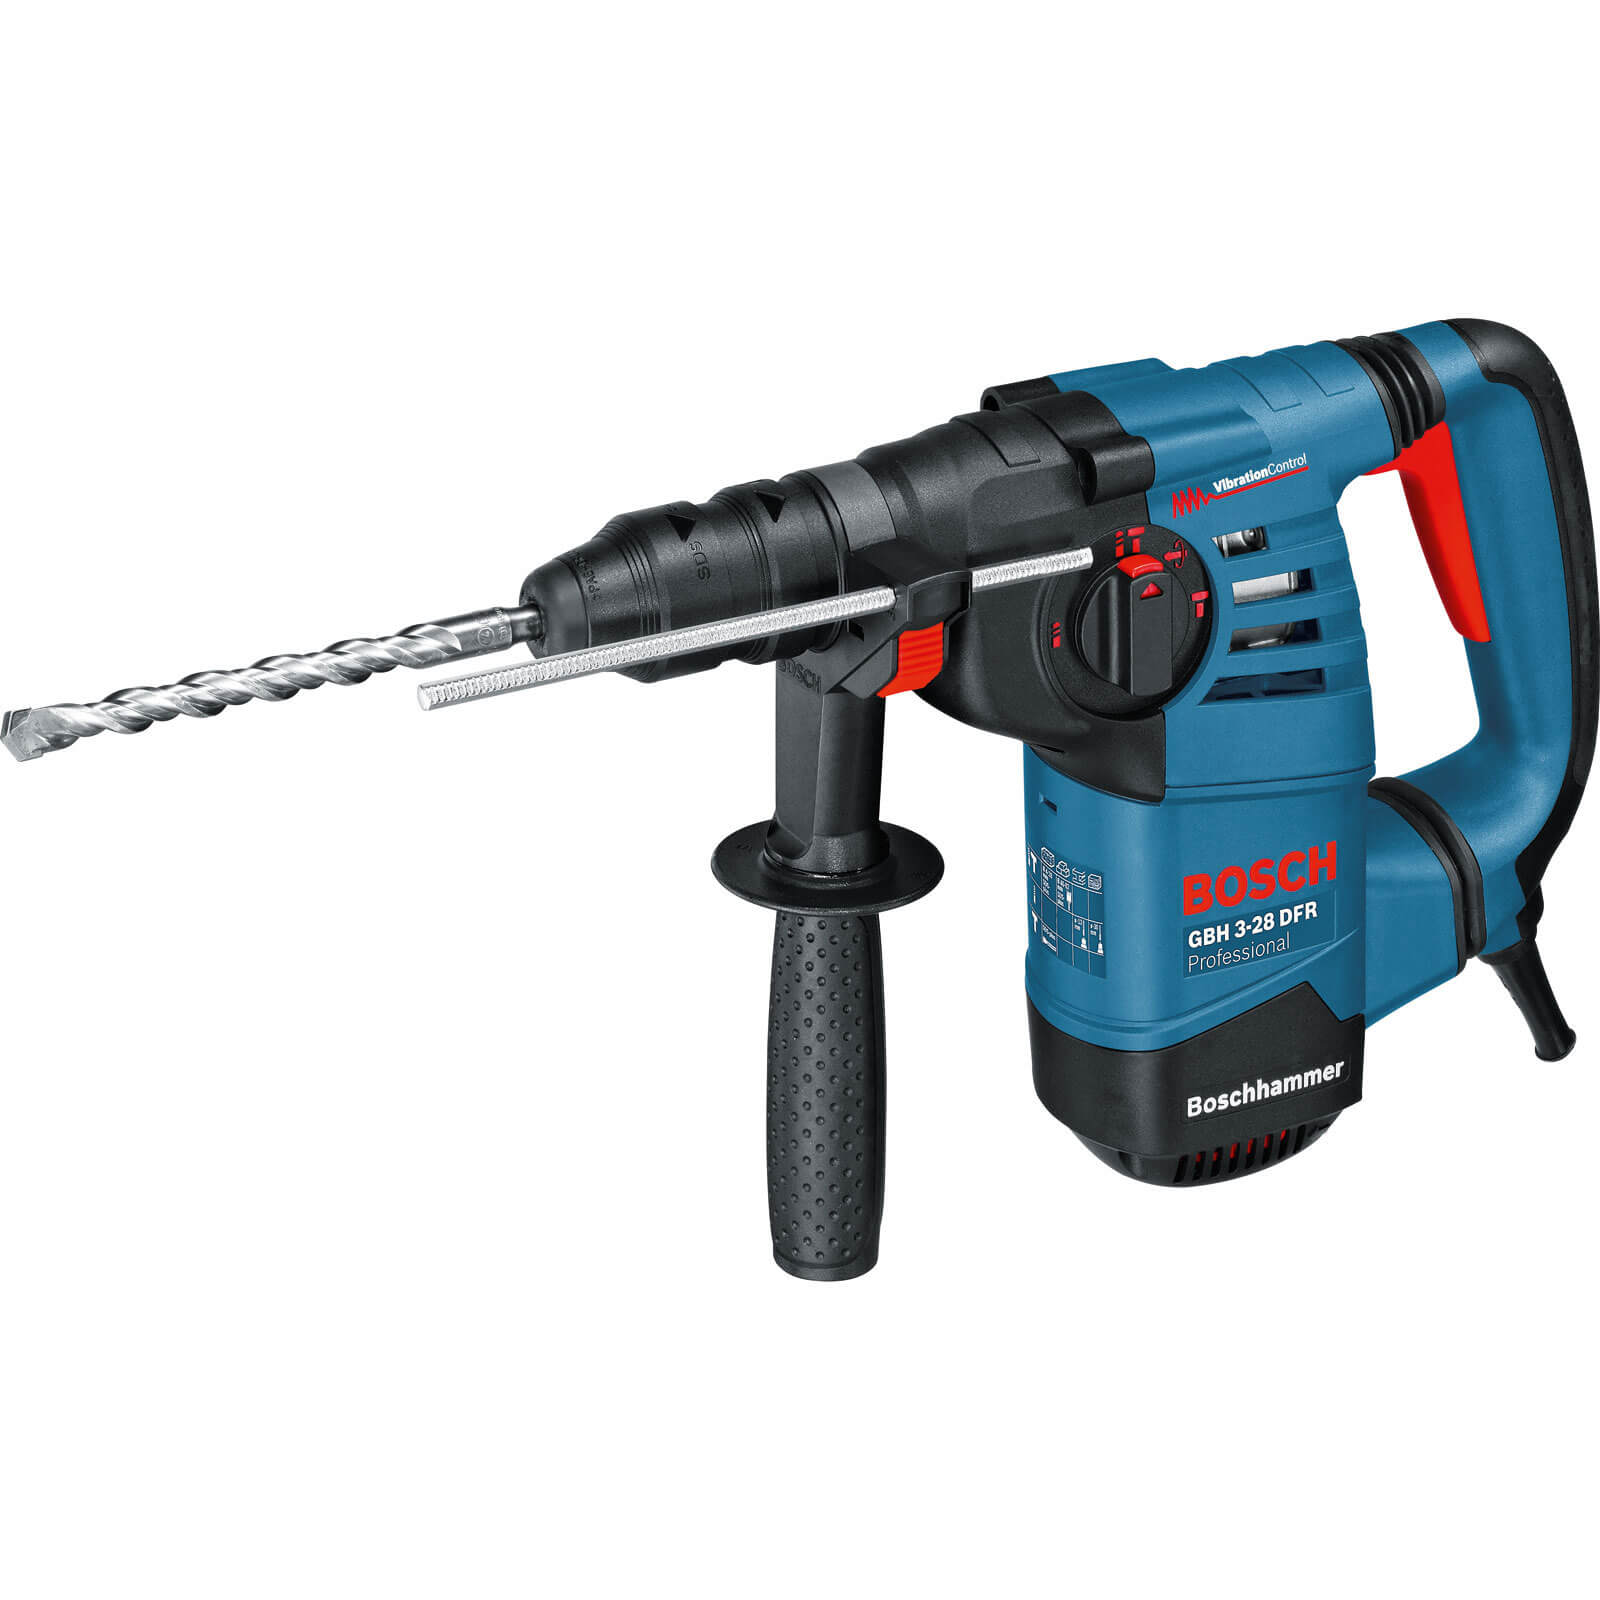 Image of Bosch GBH 3 28 DFR SDS Plus Hammer Drill 110v